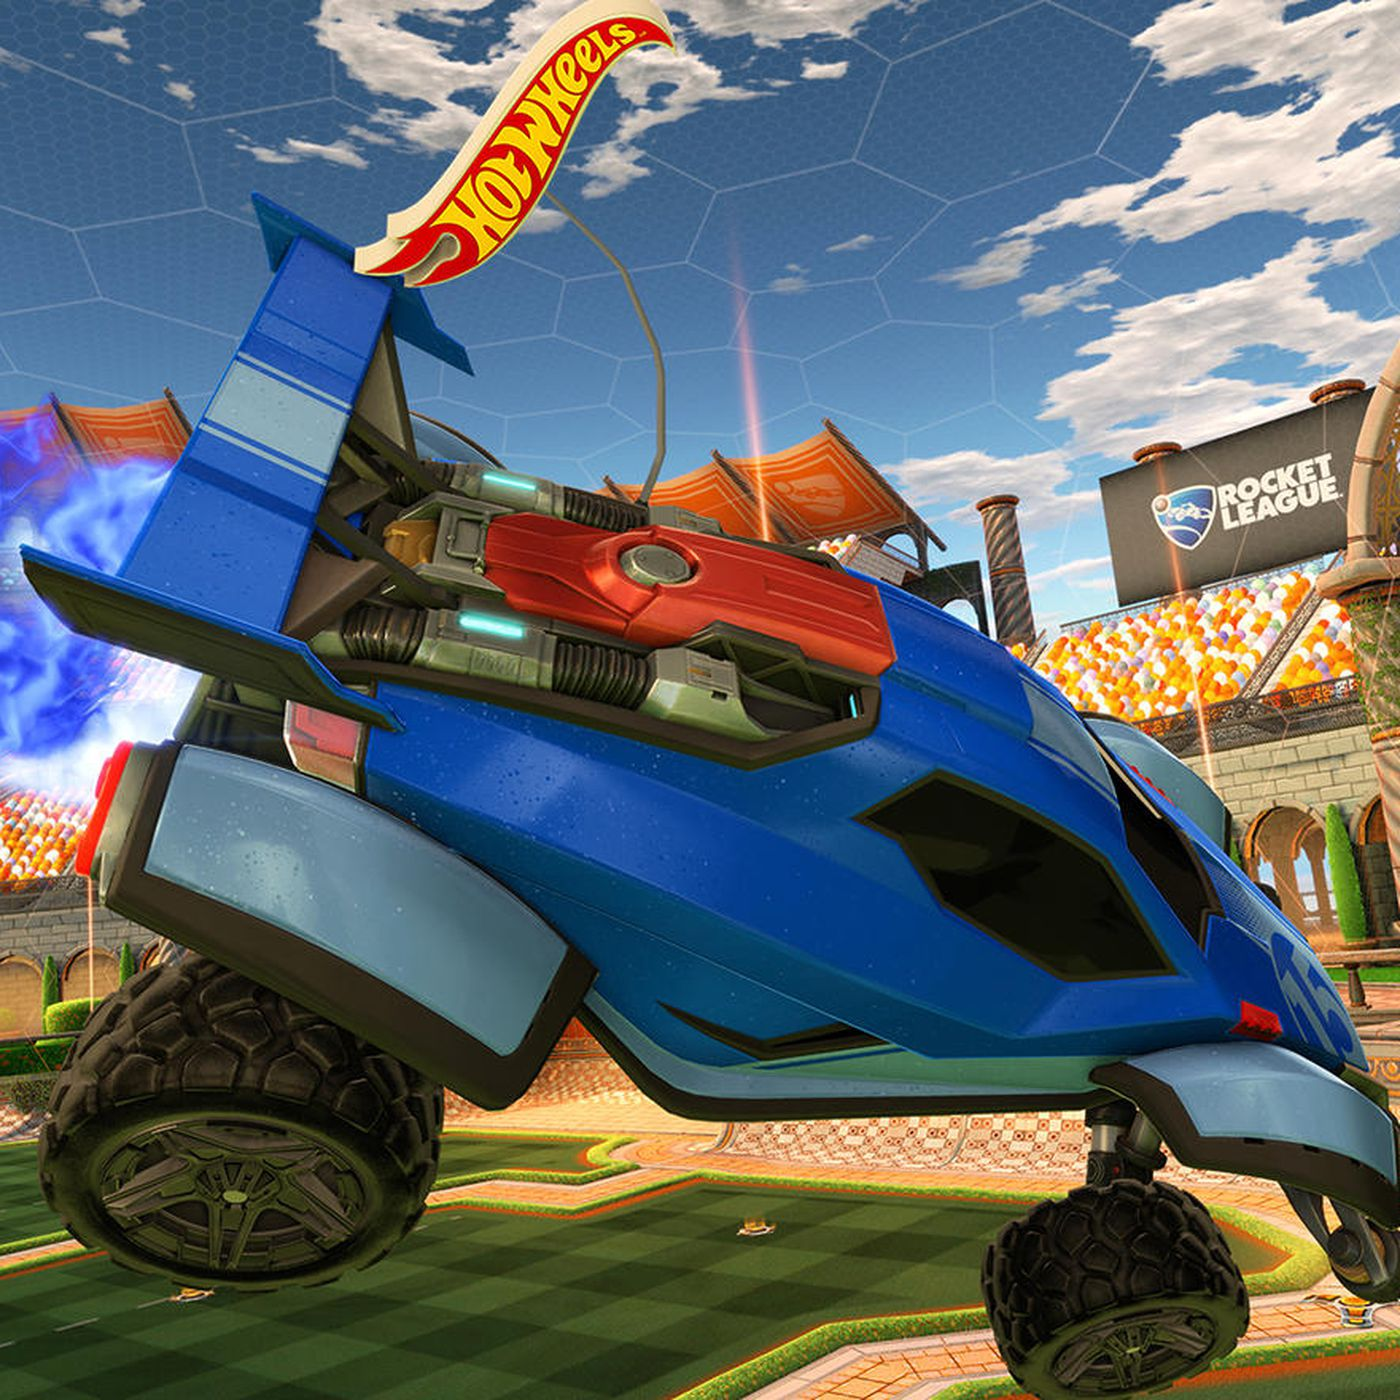 Hot Wheels Is Bringing Rocket League To Life With Remote Control Cars The Verge